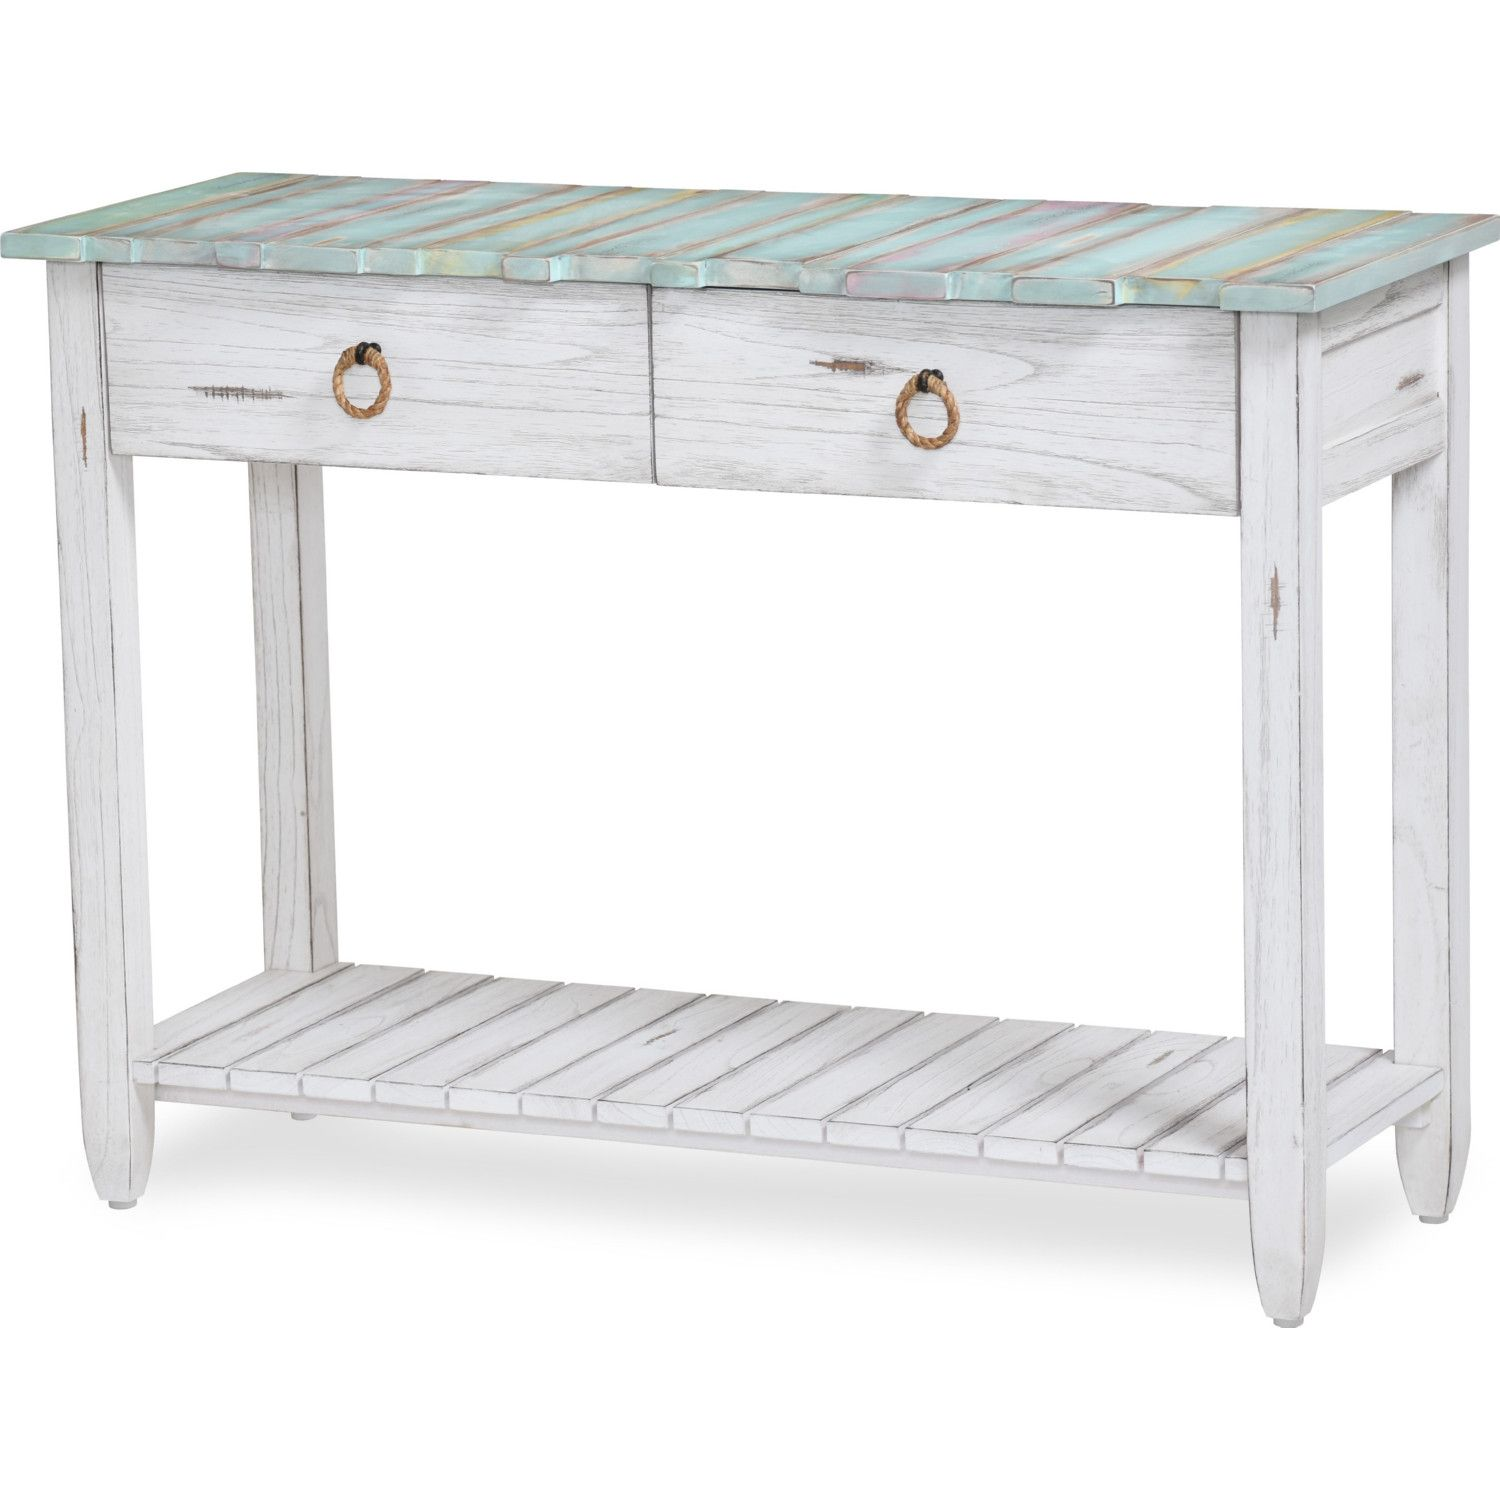 Sea Winds Picket Fence Console Table Distressed Blue White Console Table Table Furniture